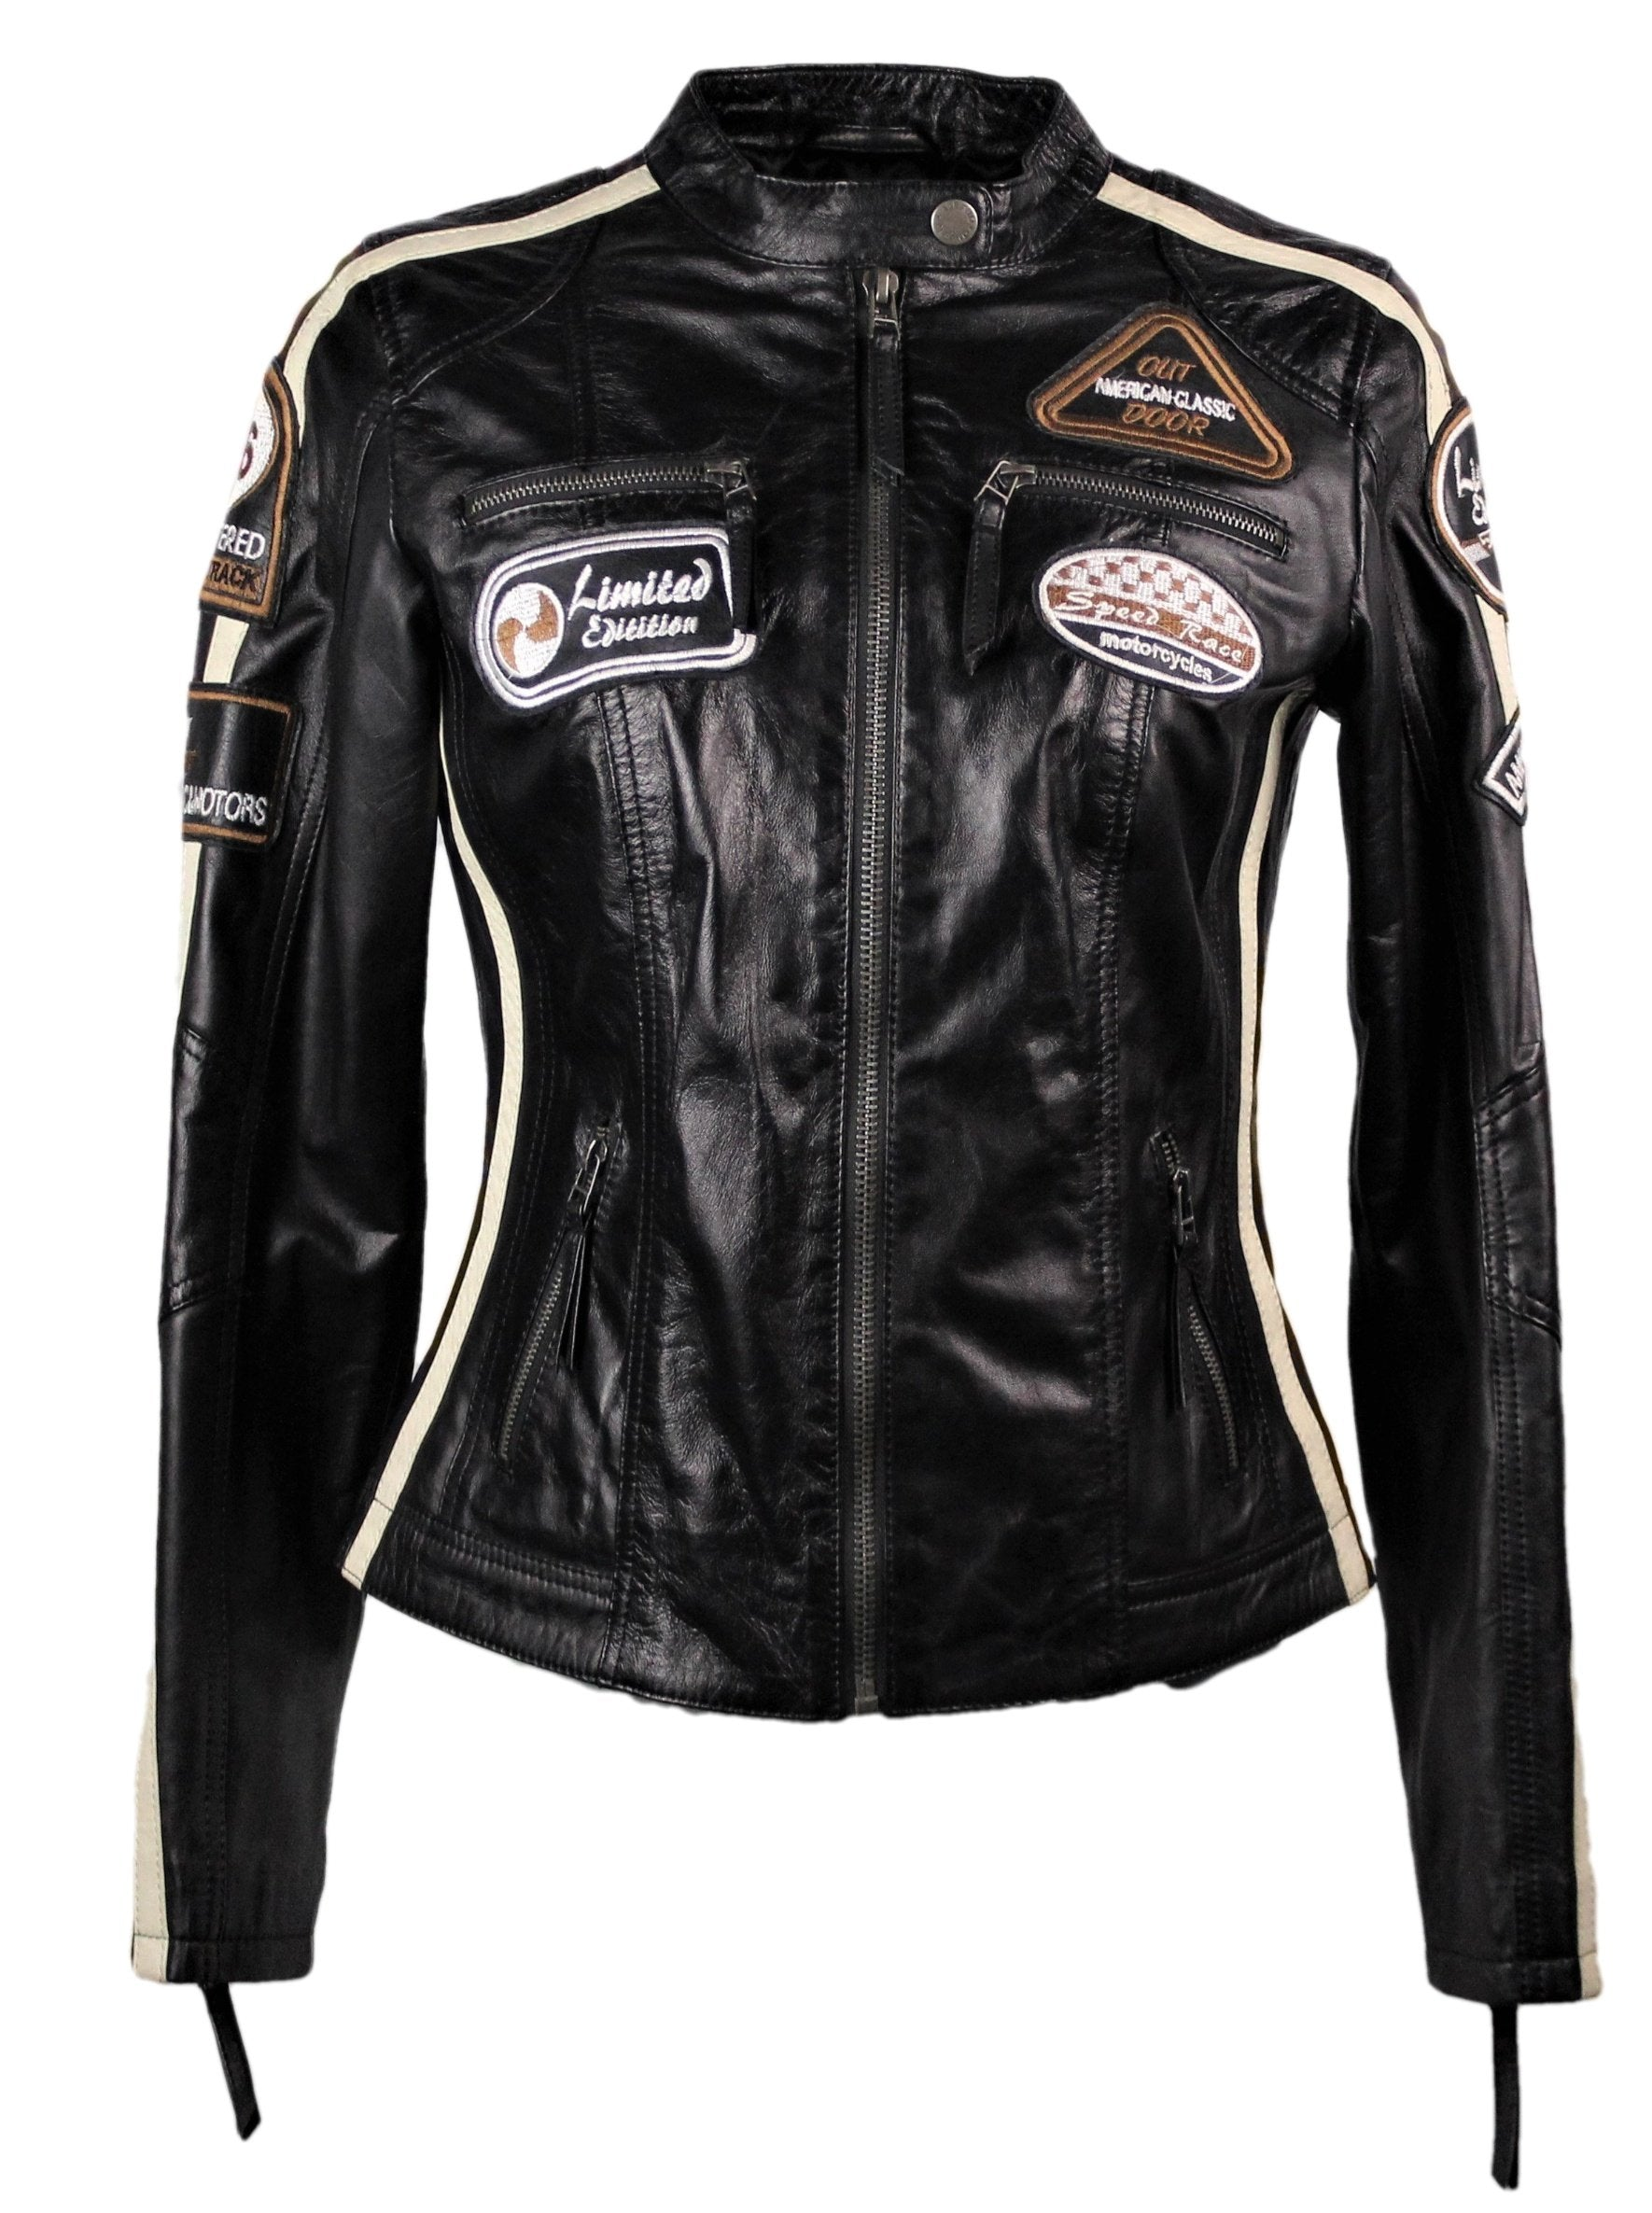 Women's Moto GP Racing Black Jacket - Sold Out - fadcloset